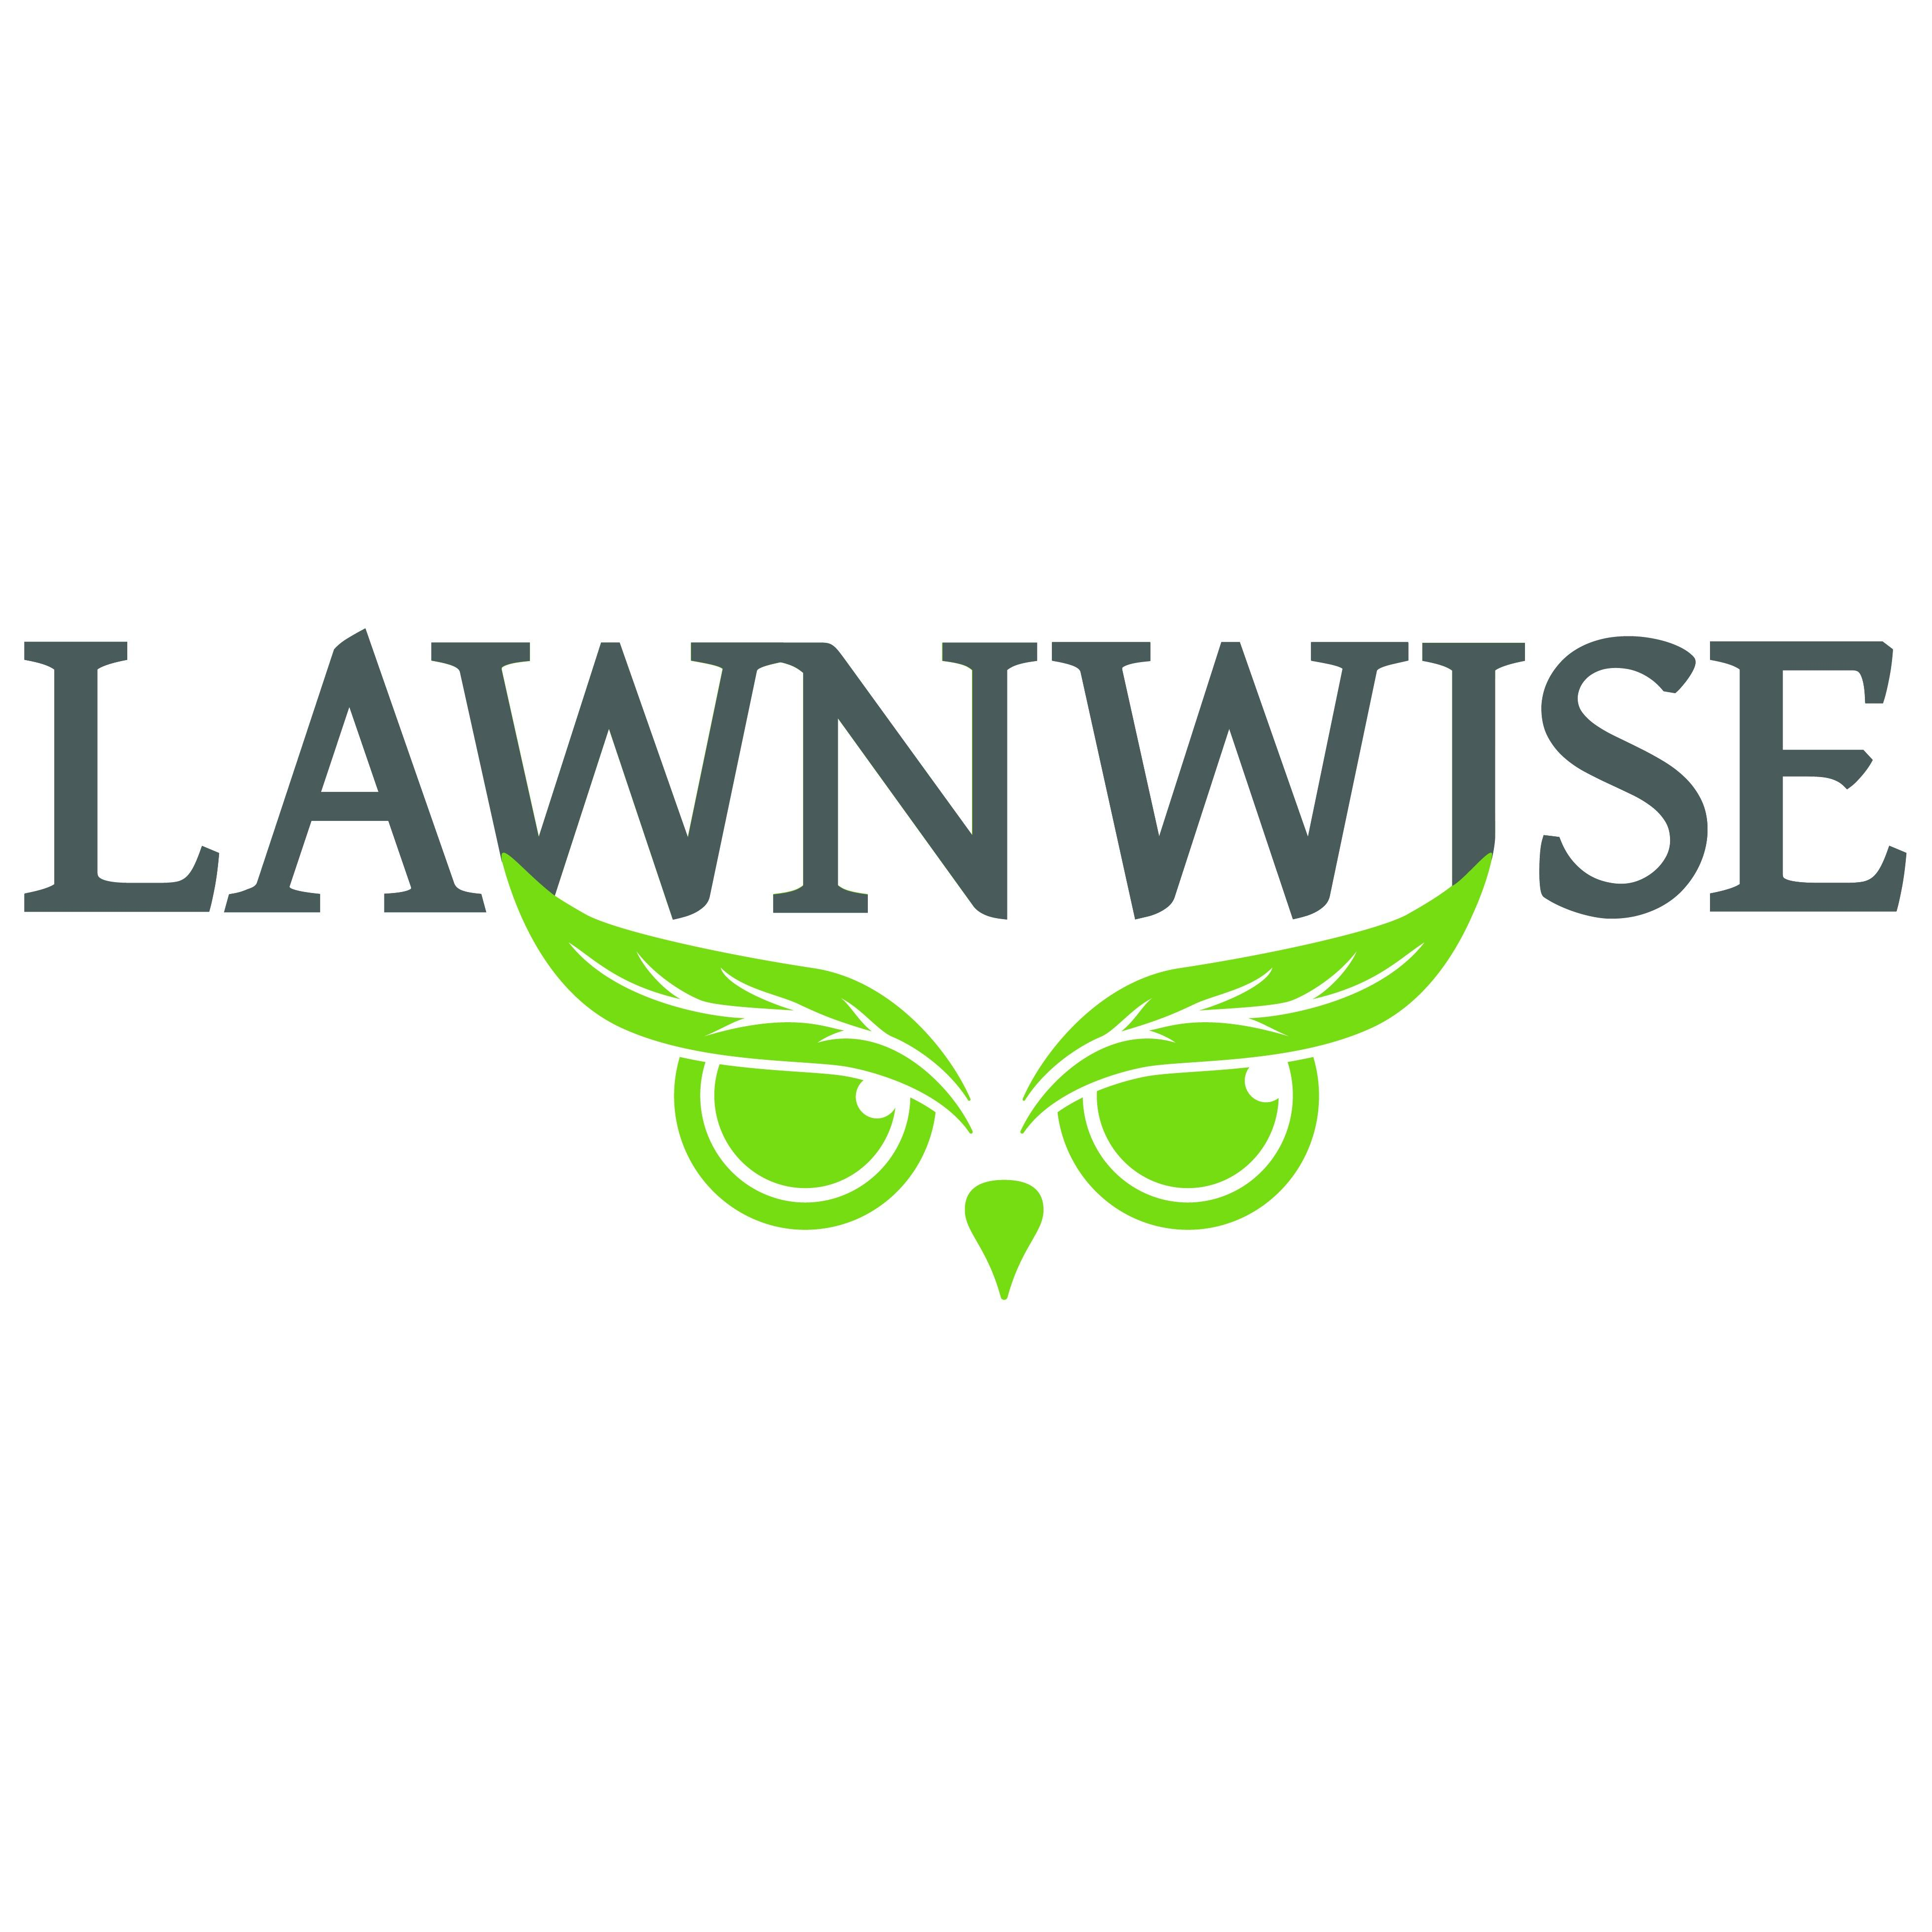 LawnWise